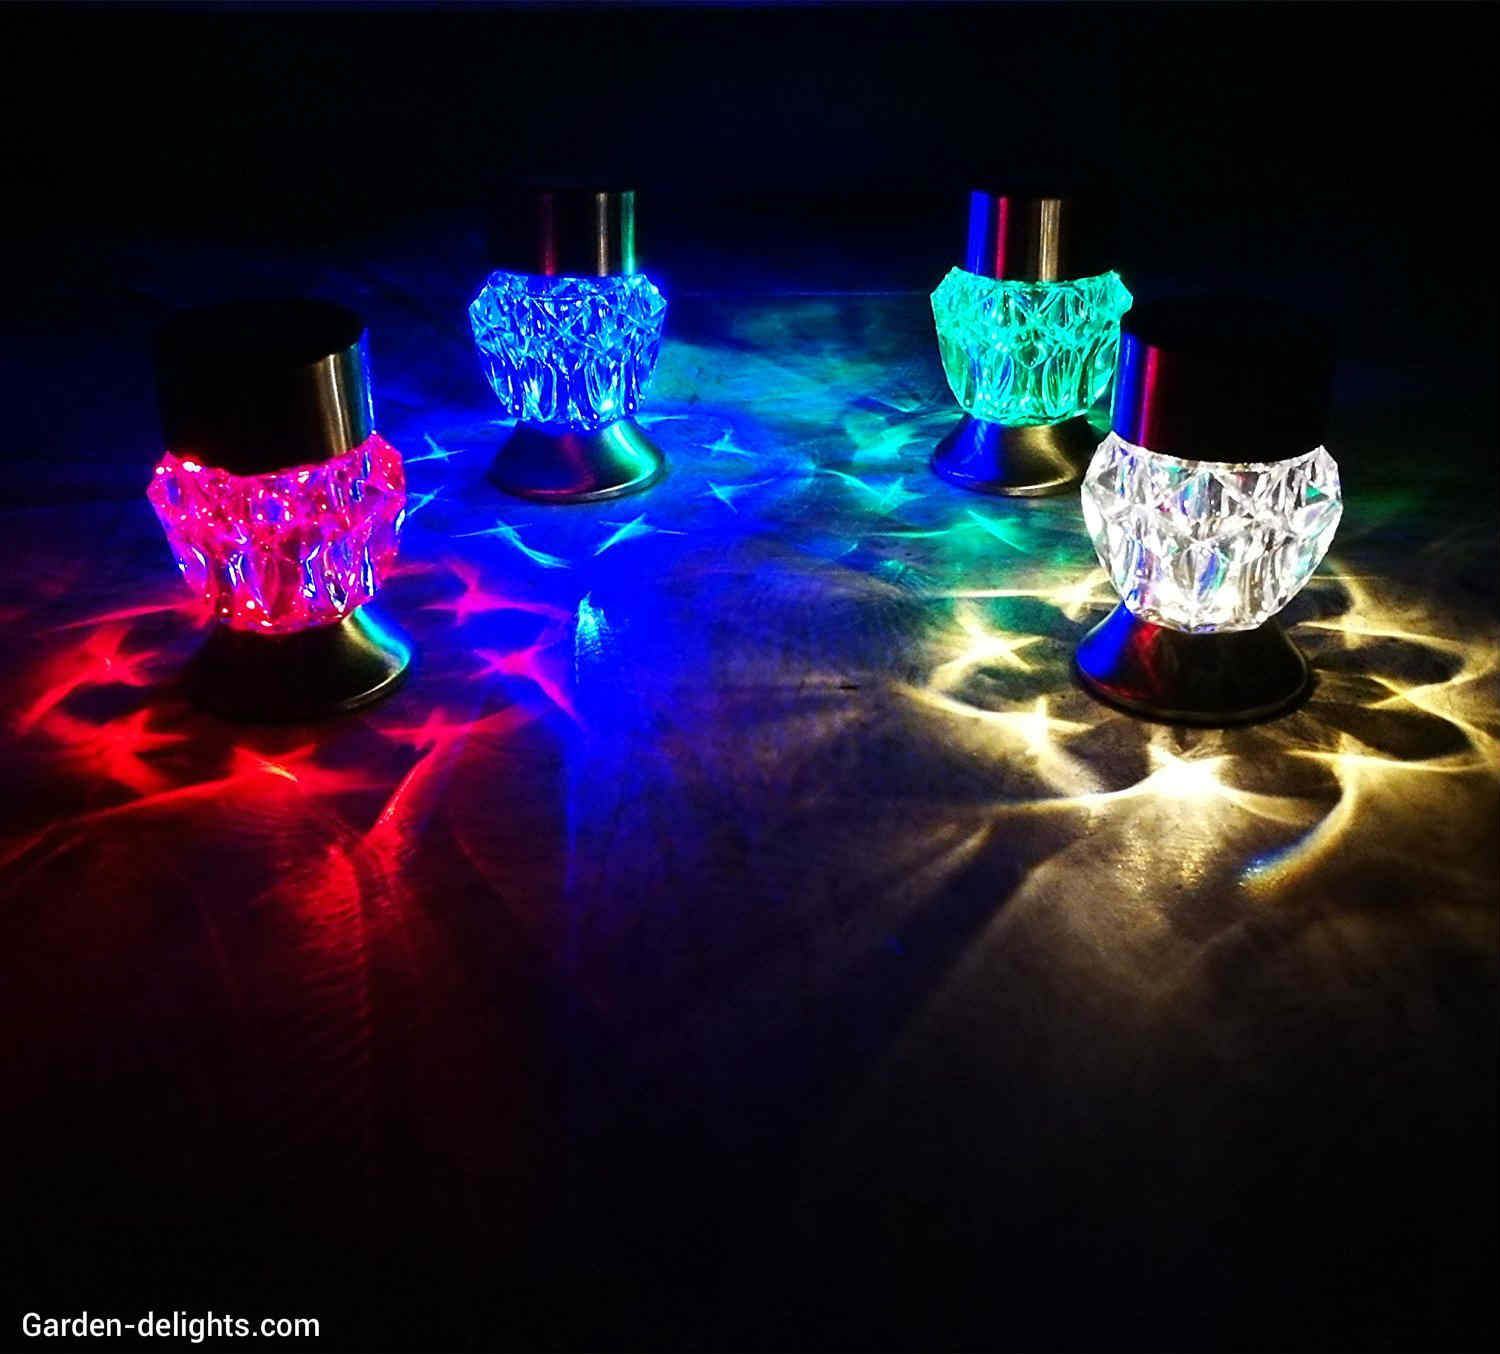 line cheap decorative deals quotations solar guides w shopping flower on cherry at decor get string shape leds find blossom lights